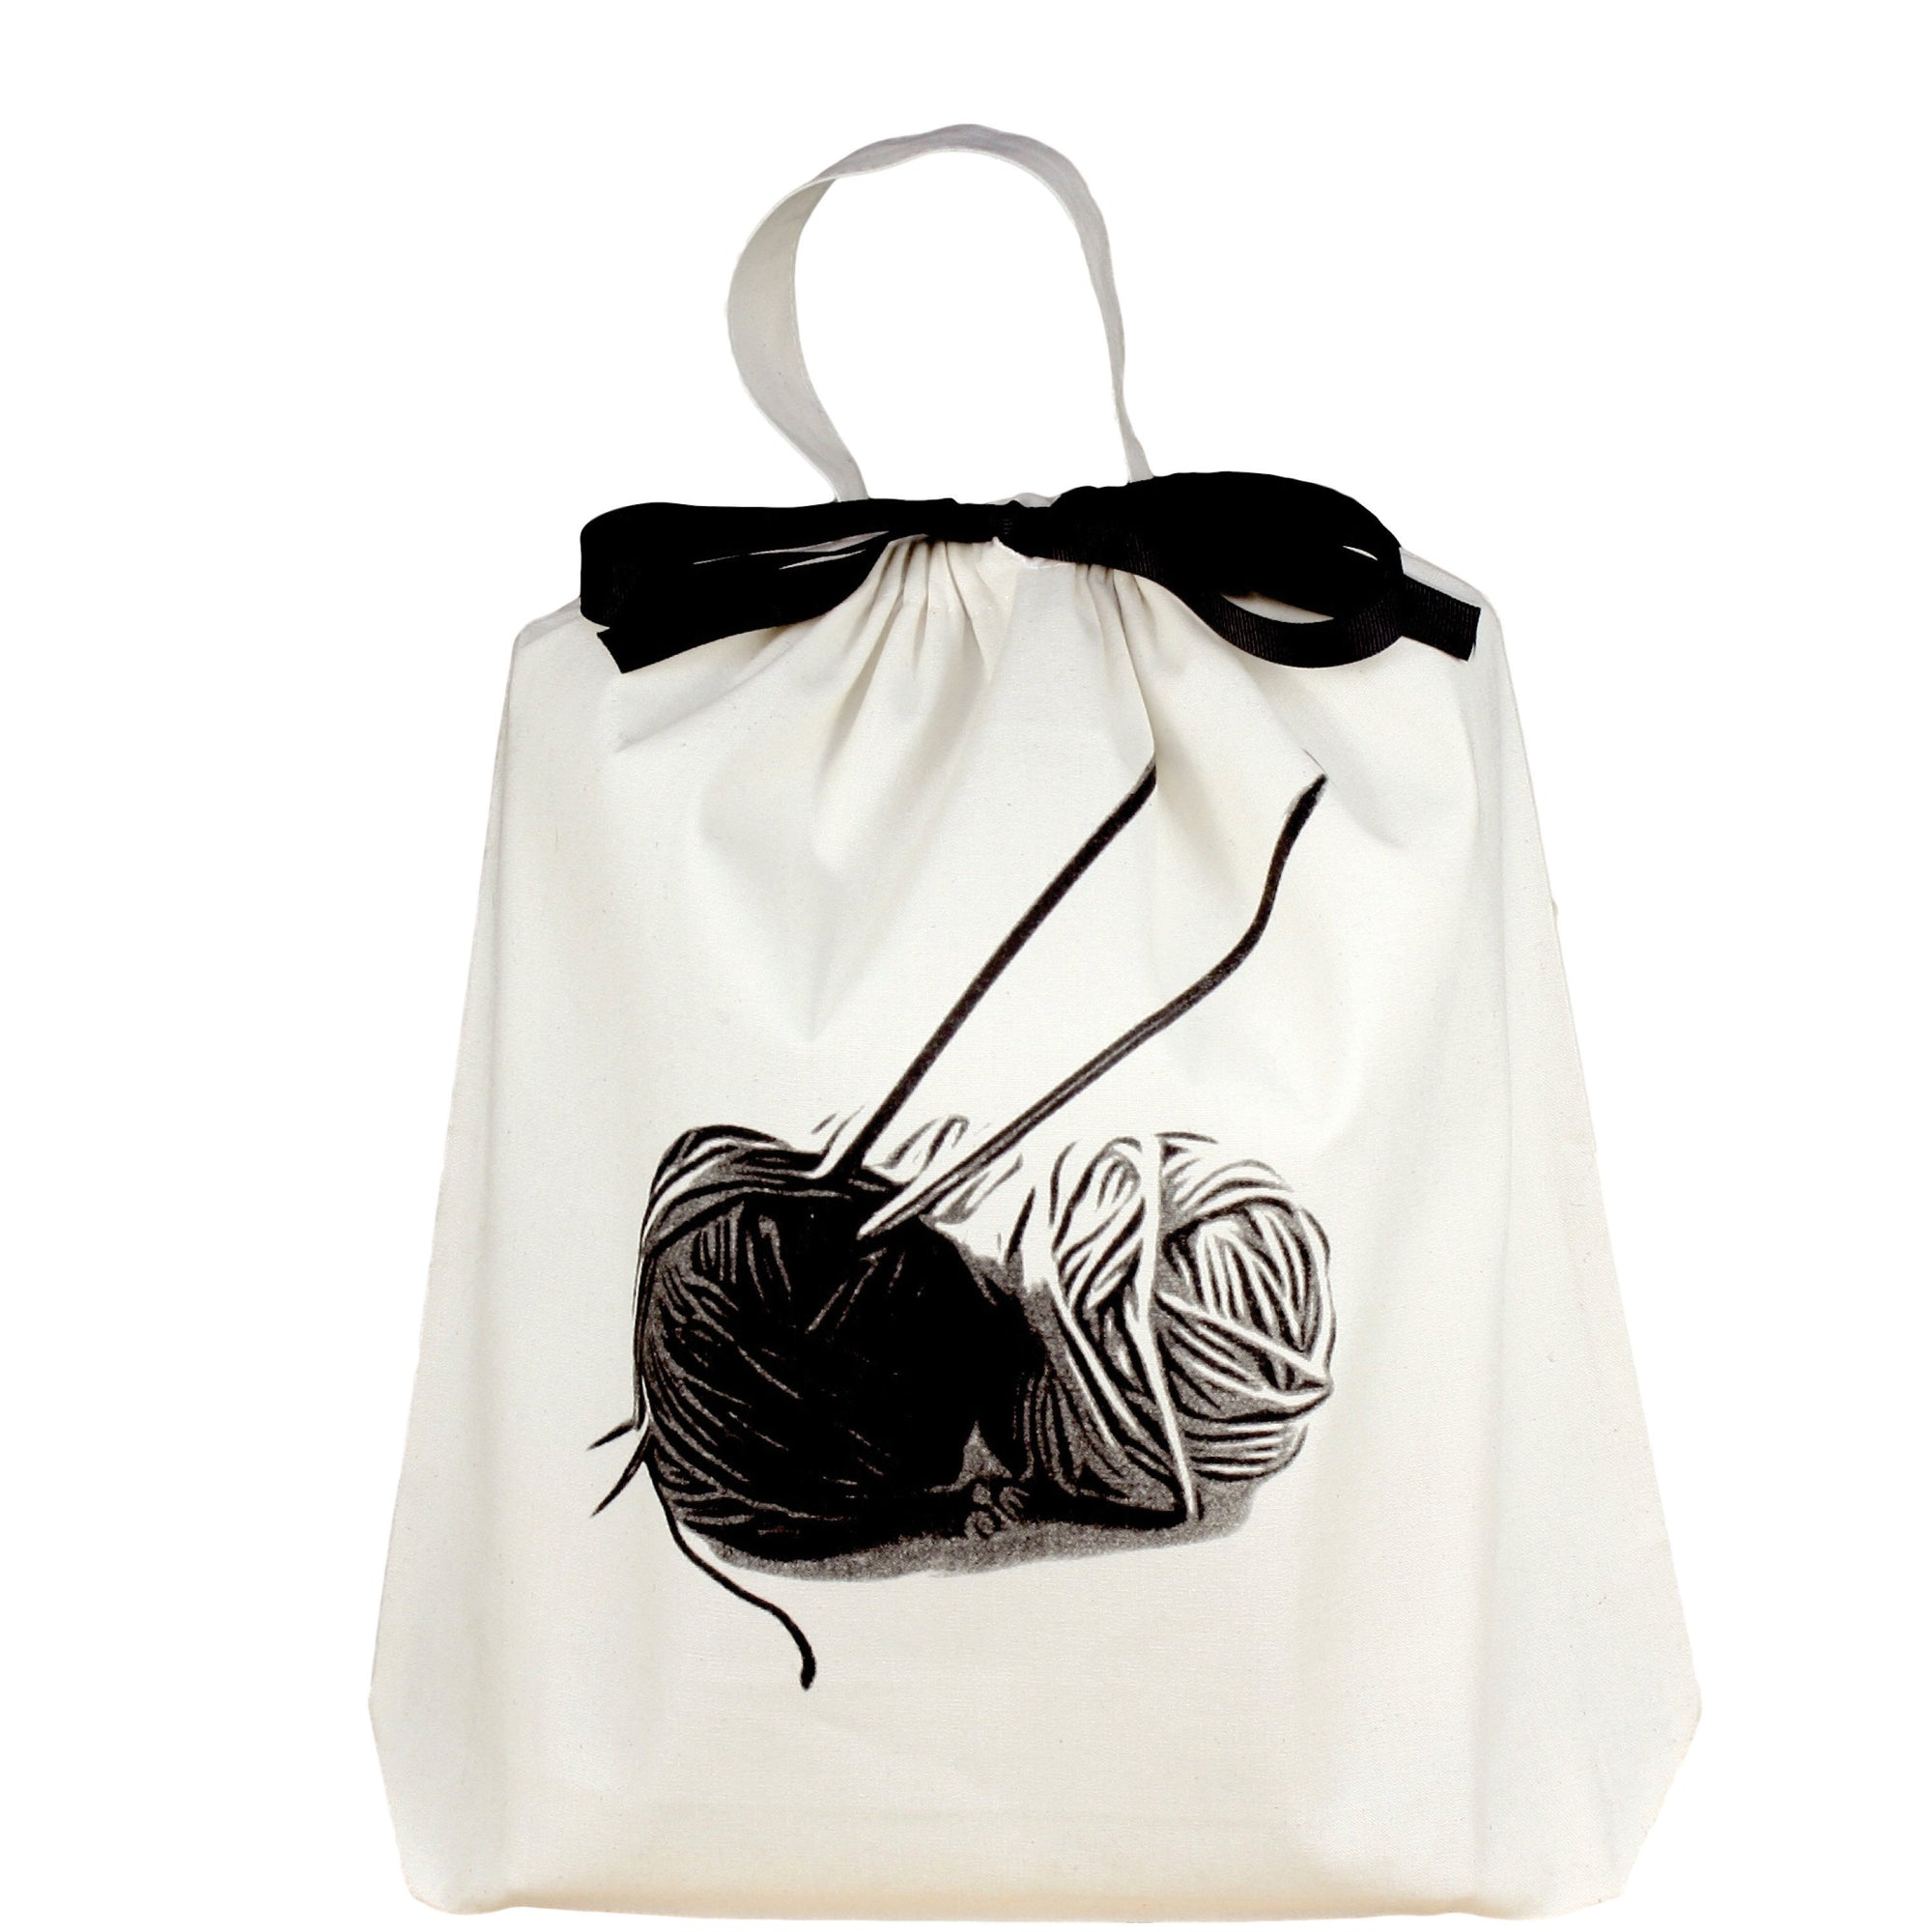 Knitting bag for your yarn and needles.